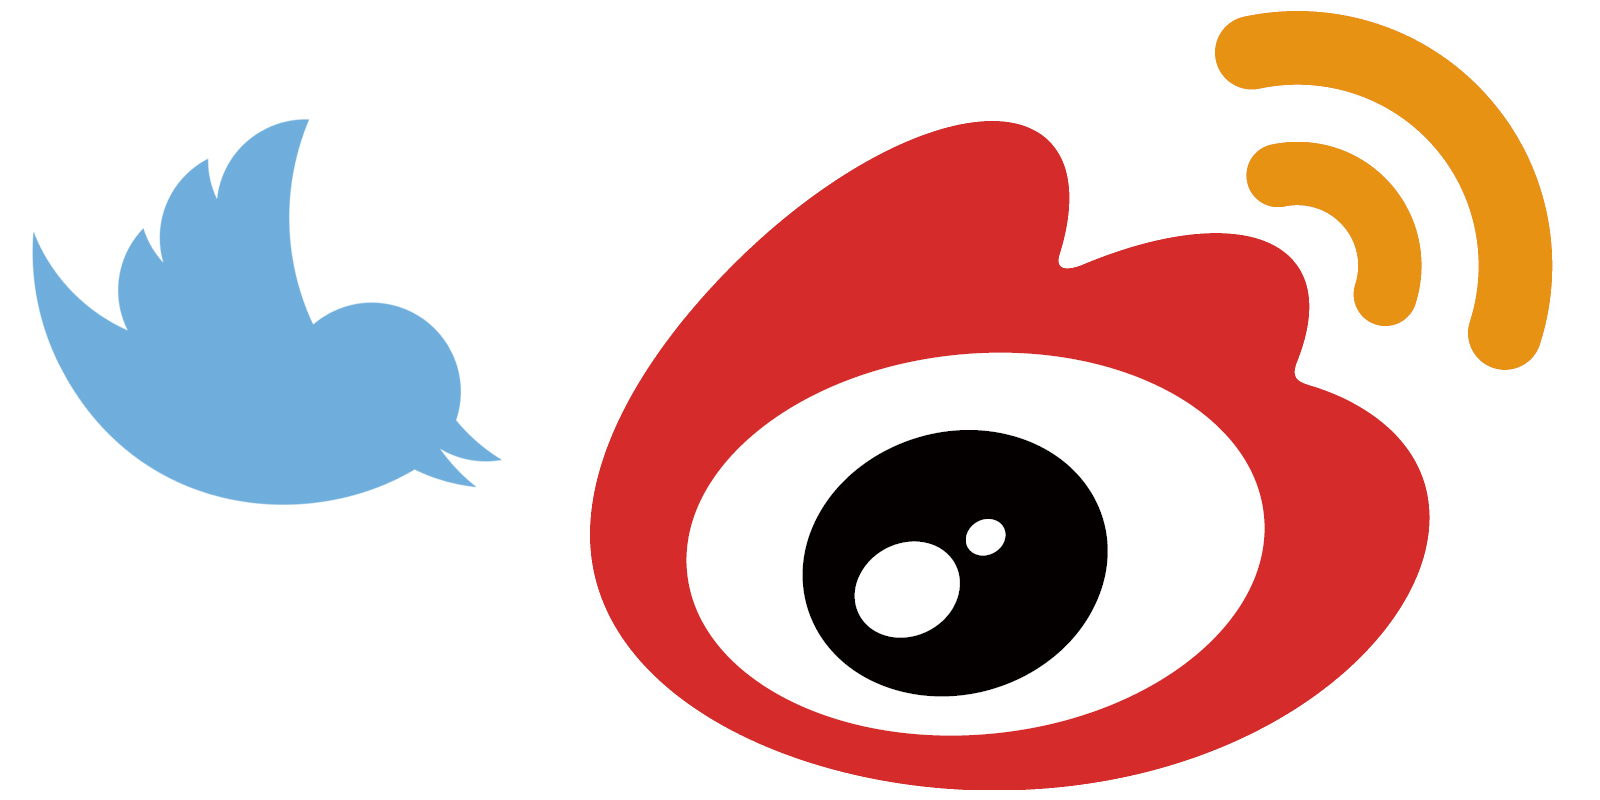 Twitter isn't worthless, but it's now worth less than its Chinese.